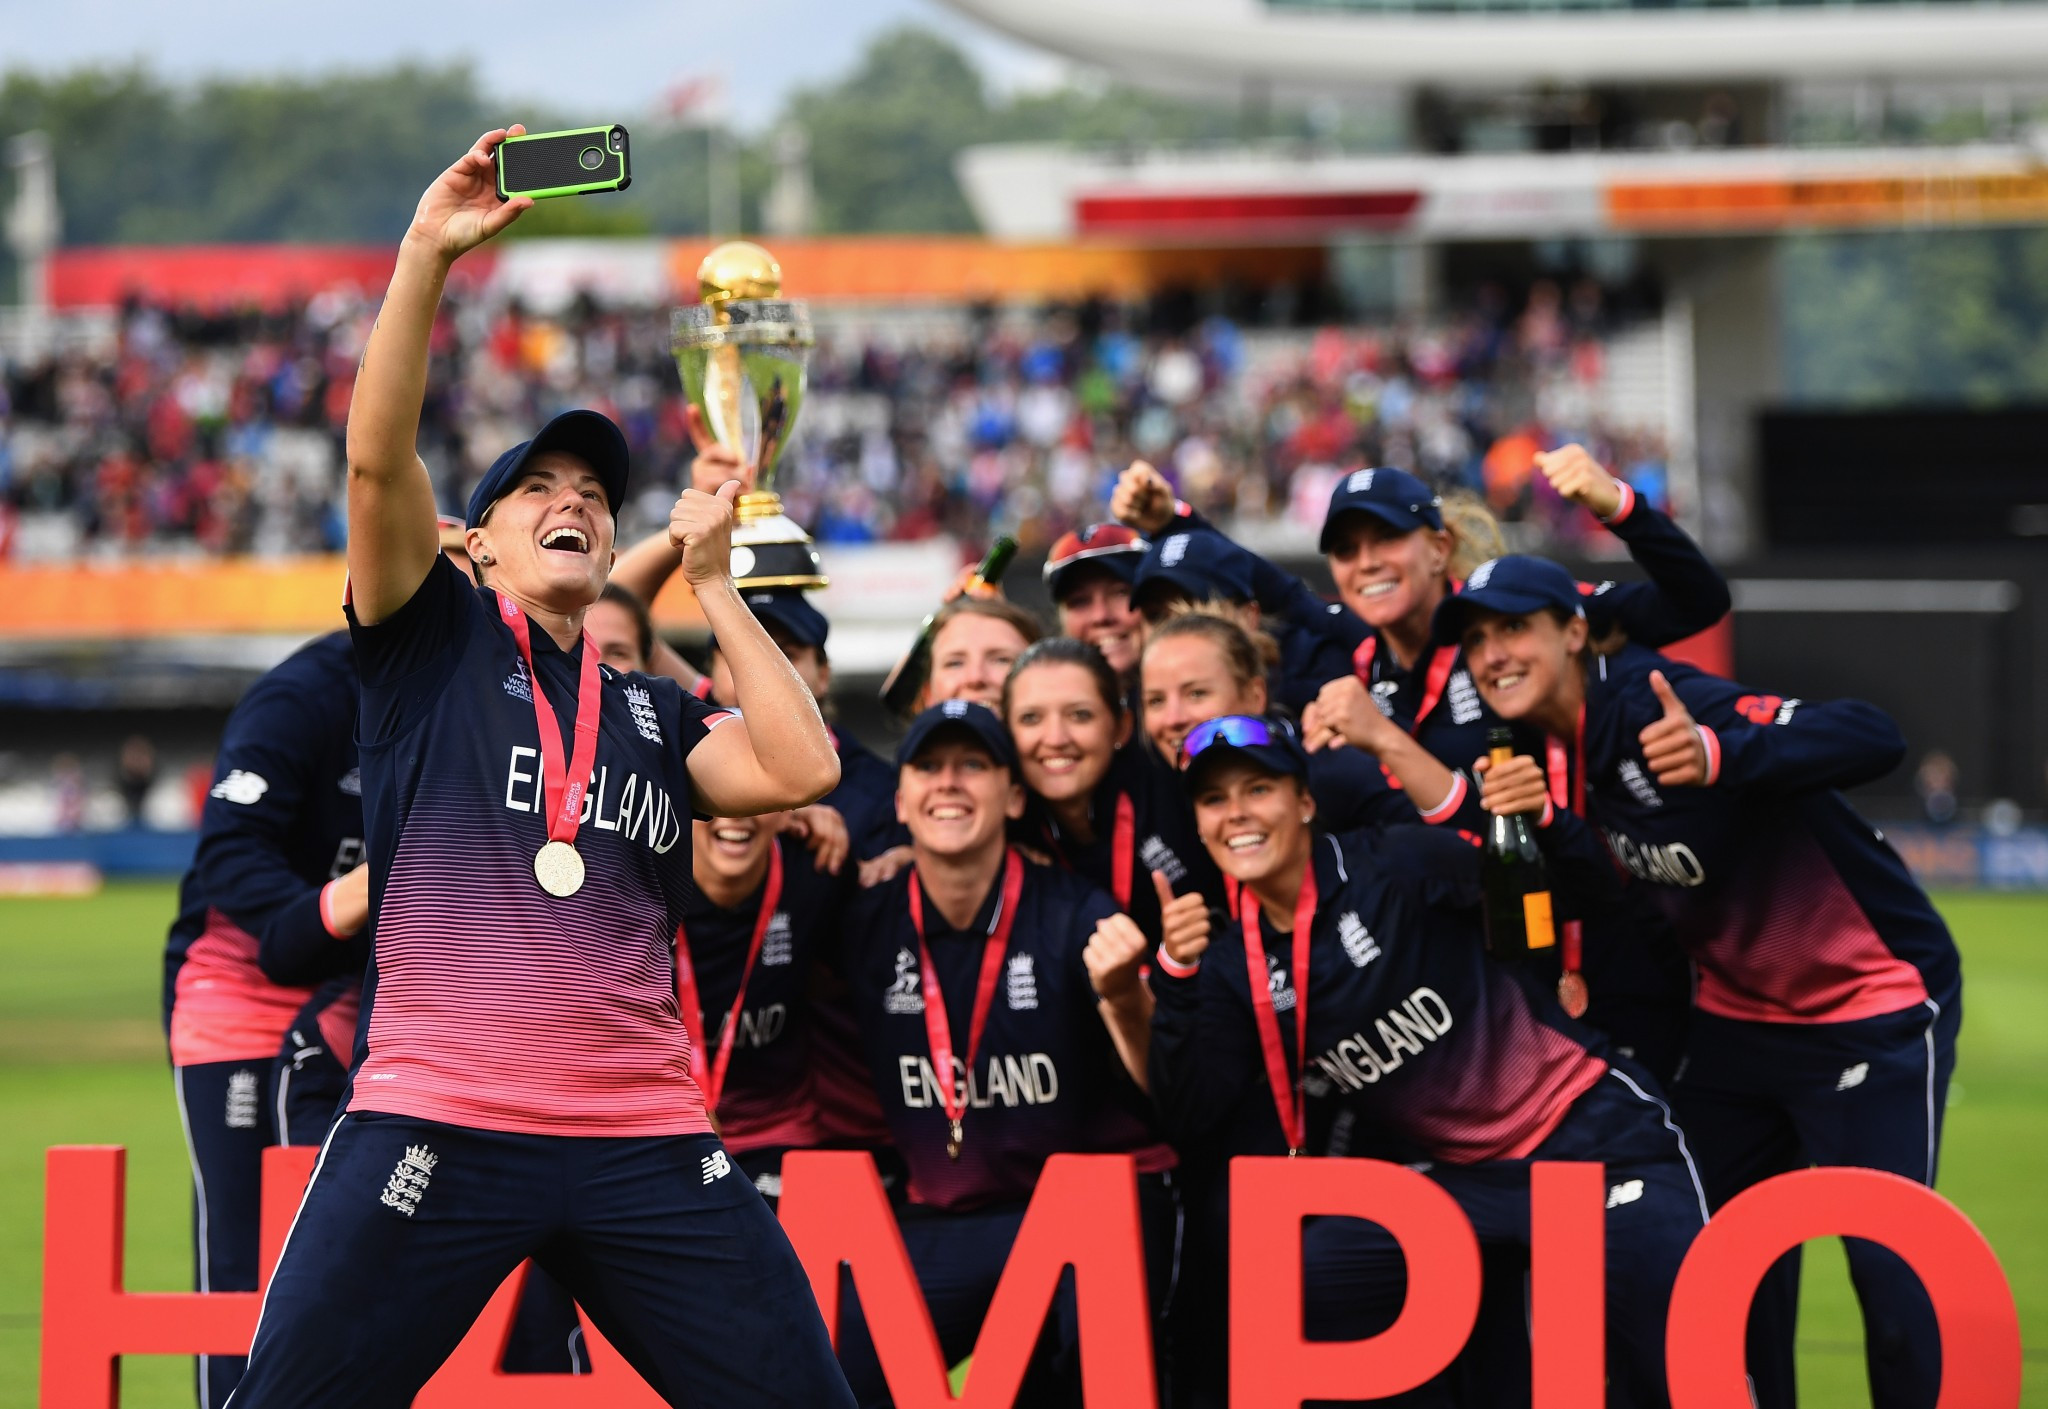 Women's Cricket World Cup sees massive increase in viewing figures